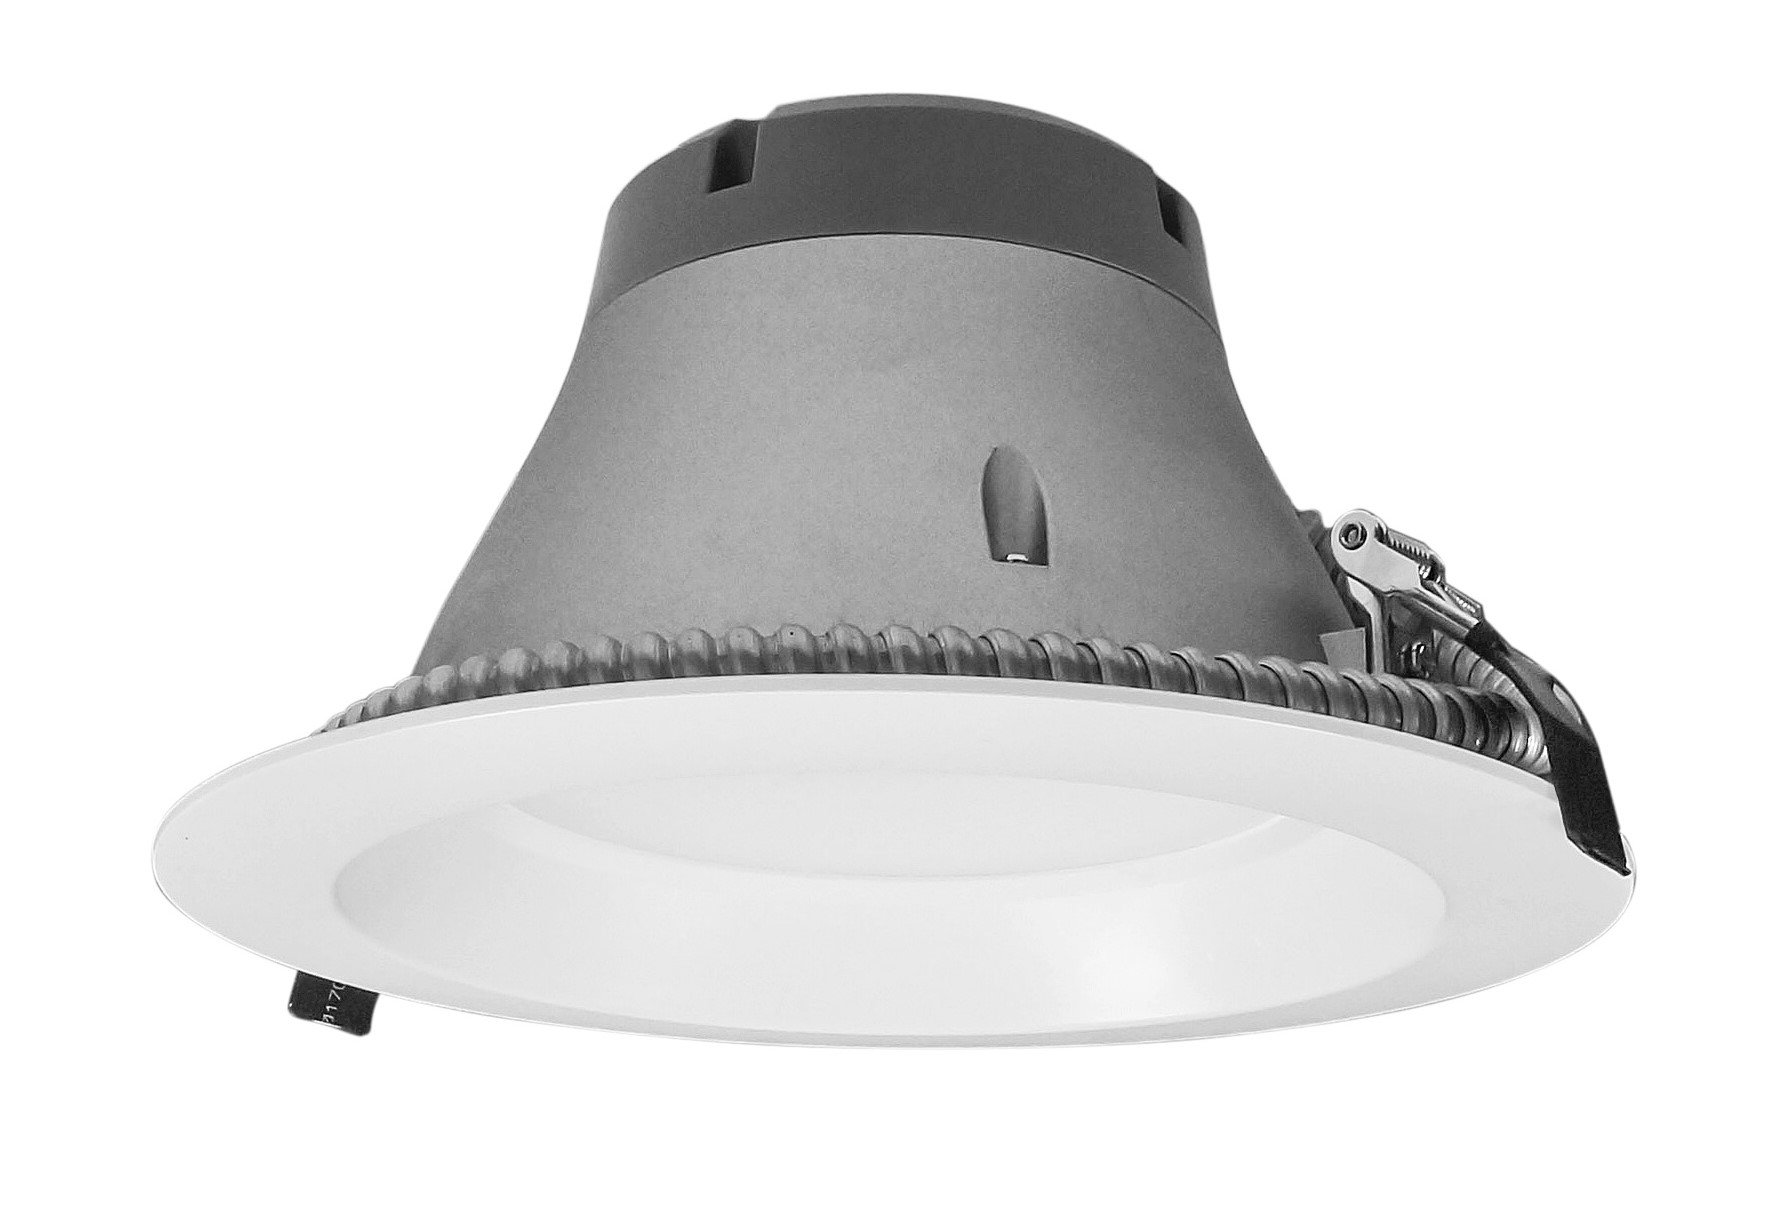 NICOR Lighting Dimmable 3500K Commercial LED Recessed Downlight Retrofit Kit, White (CLR8-10-UNV-35K-WH)